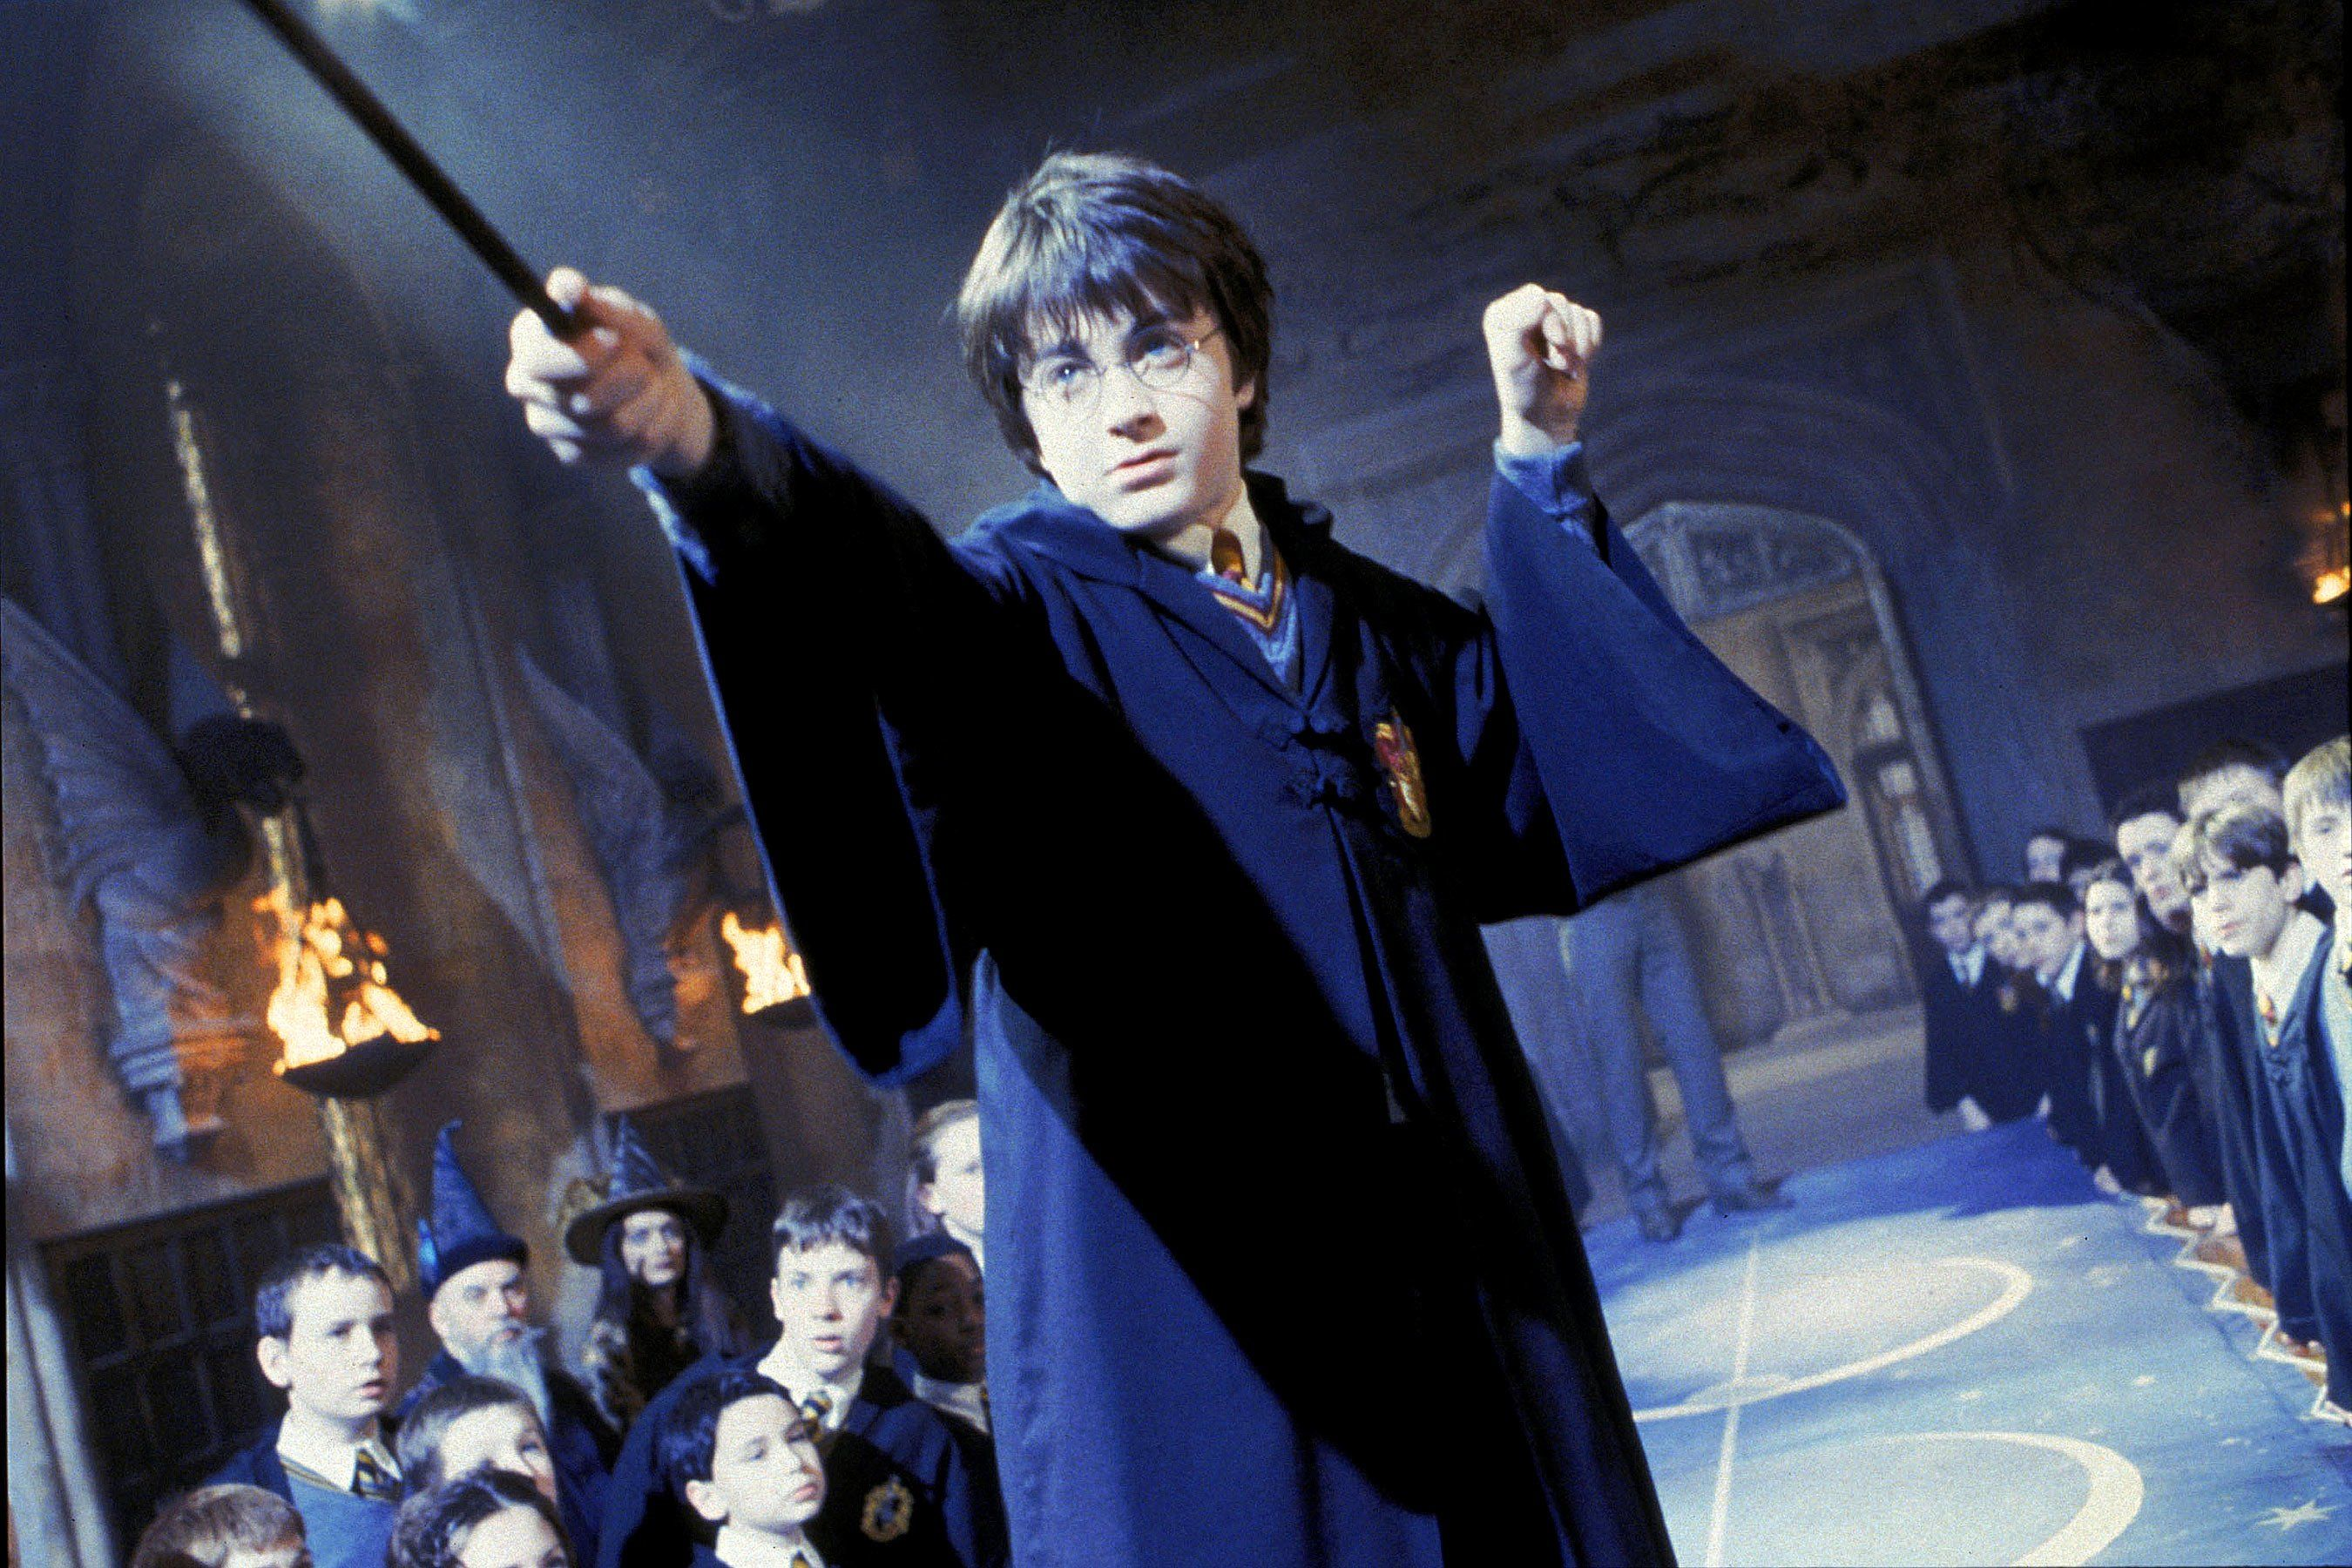 8 Harry Potter Wizards Unite Tips And Tricks Chamber Of Secrets Free Movies Online Harry Potter Wizard